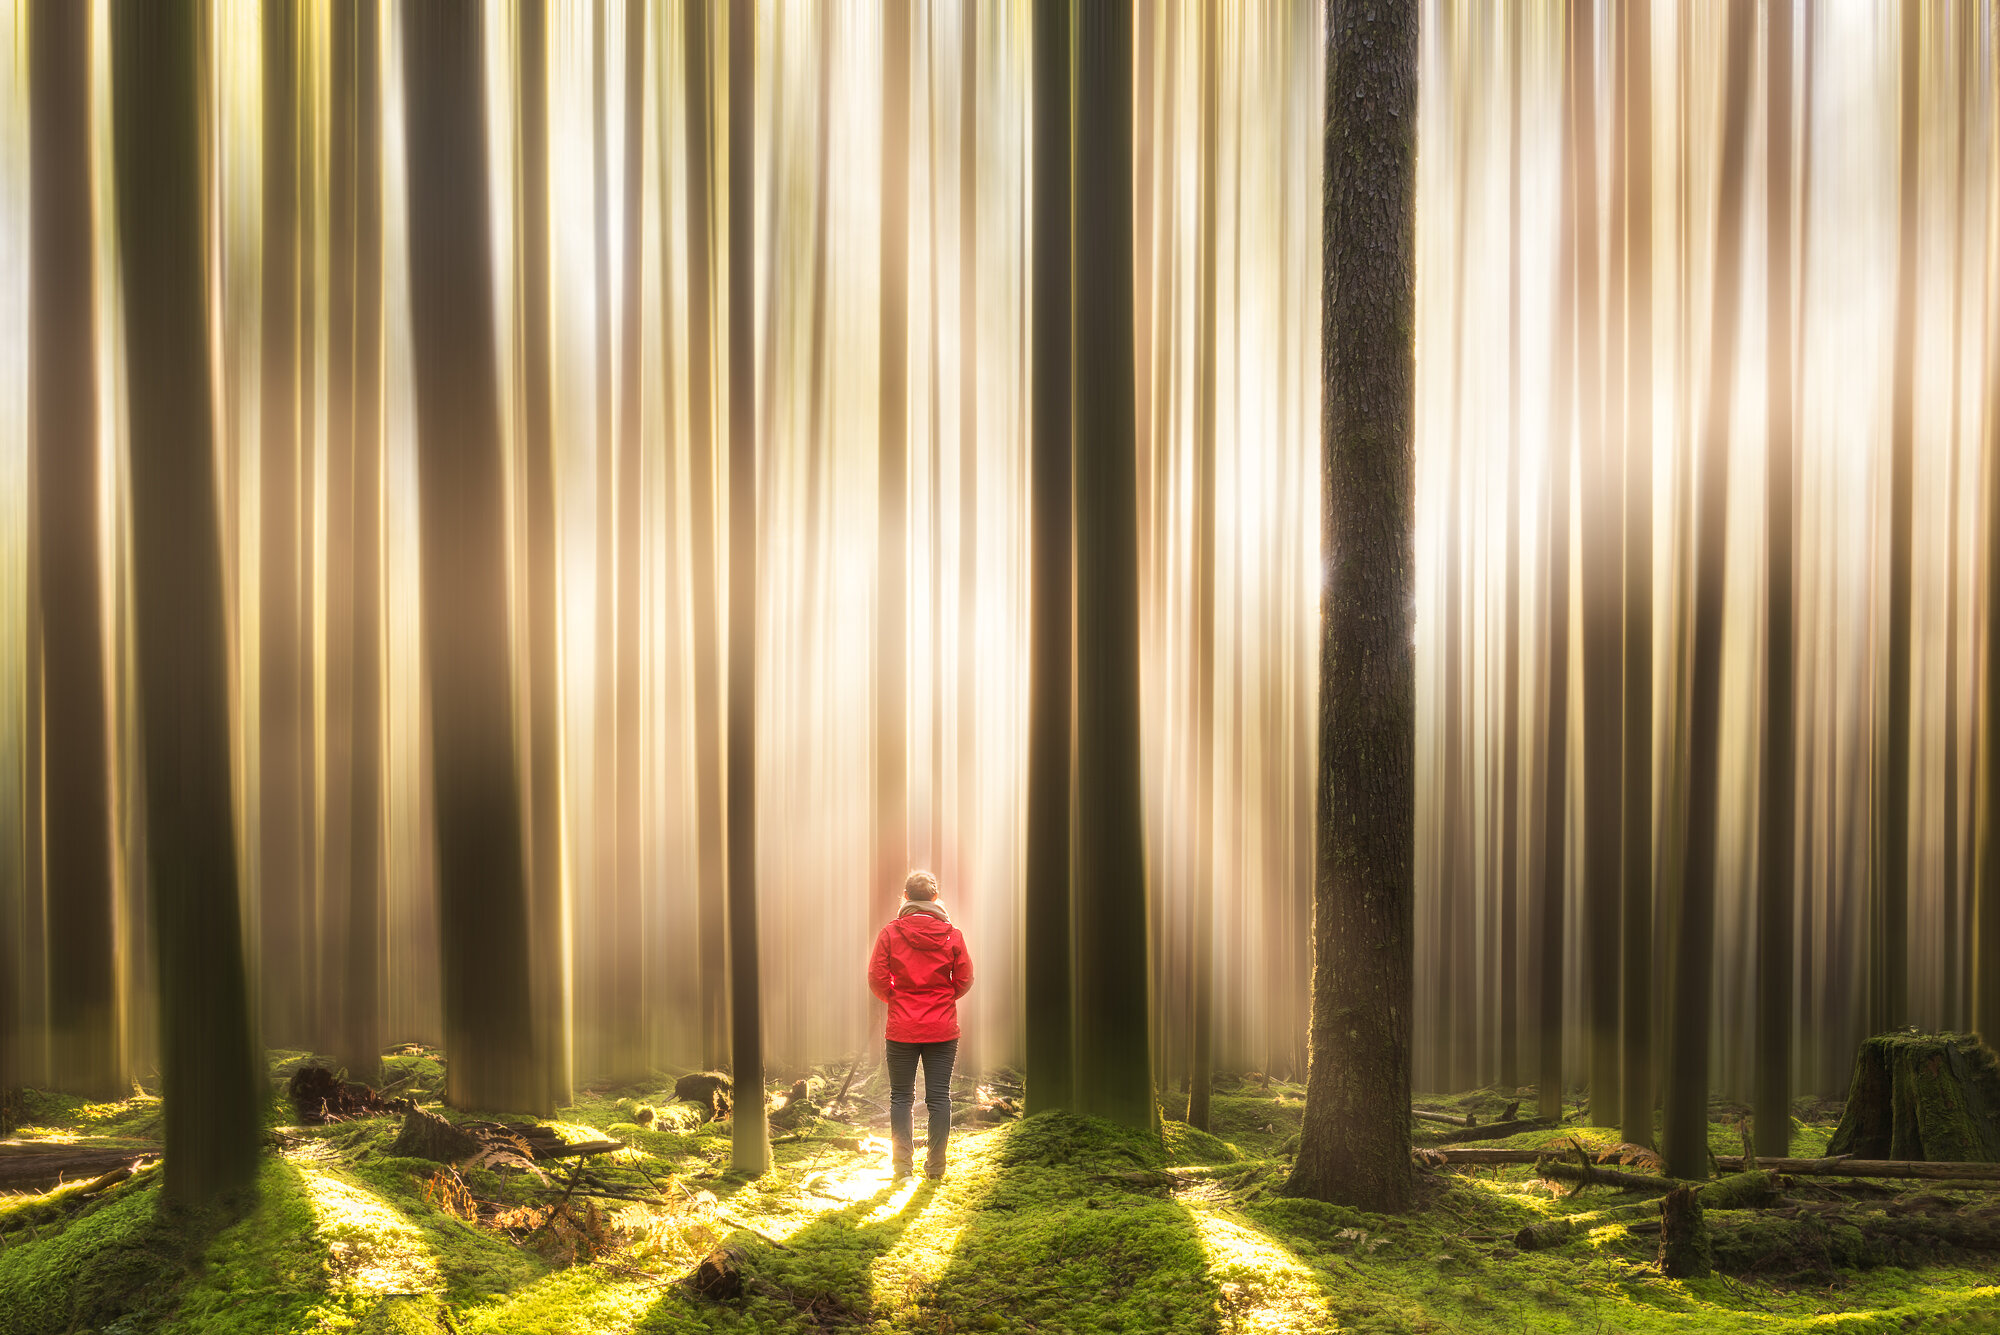 Vancouver Fog Photography: 'Walking in a Dream'